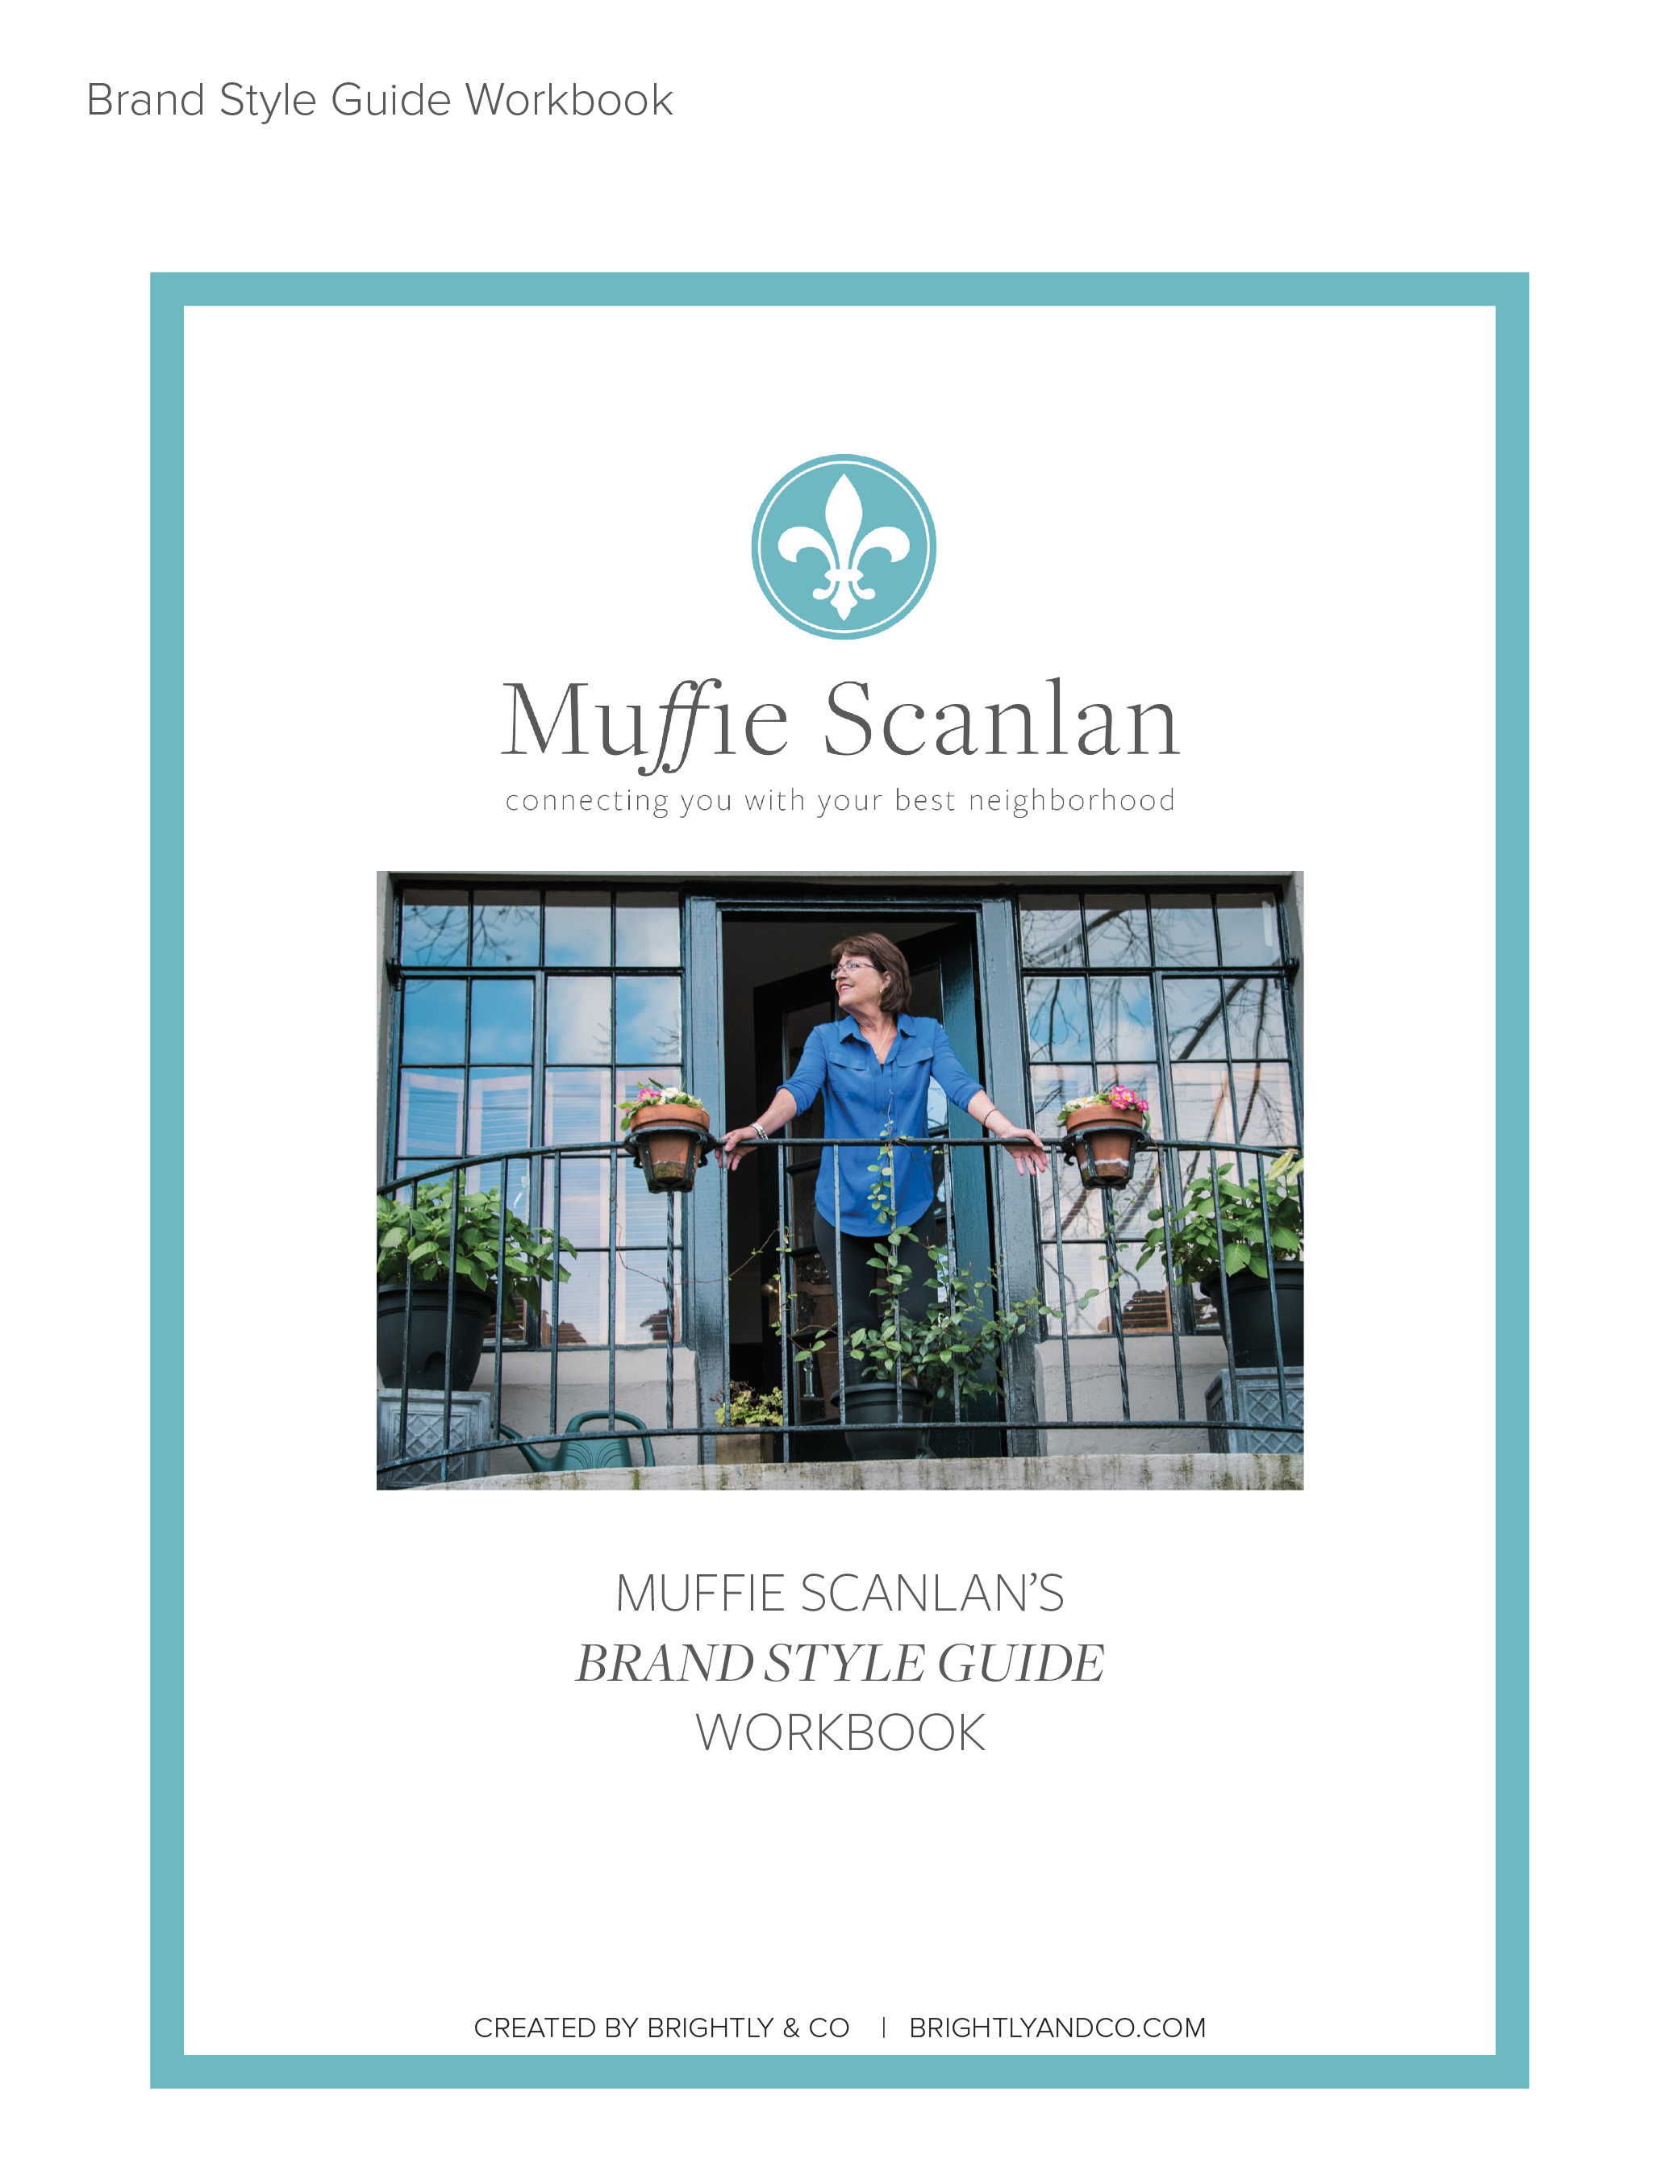 Muffie Scanlan Brand Style Guide workbook created by Brightly and Co.